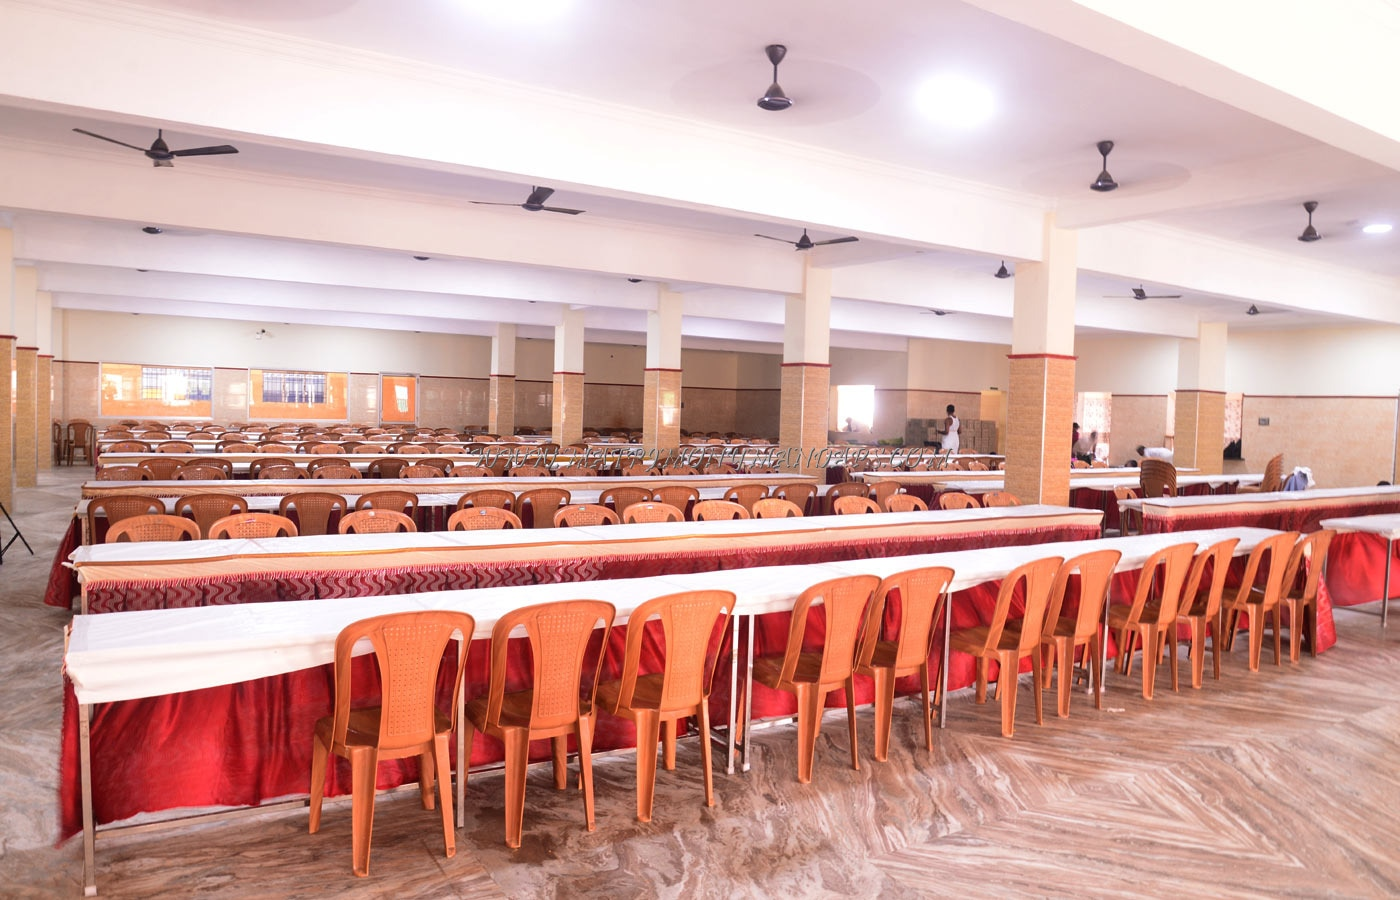 Find the availability of the MSK Diamond Mahal (A/C) in Ambattur, Chennai and avail special offers